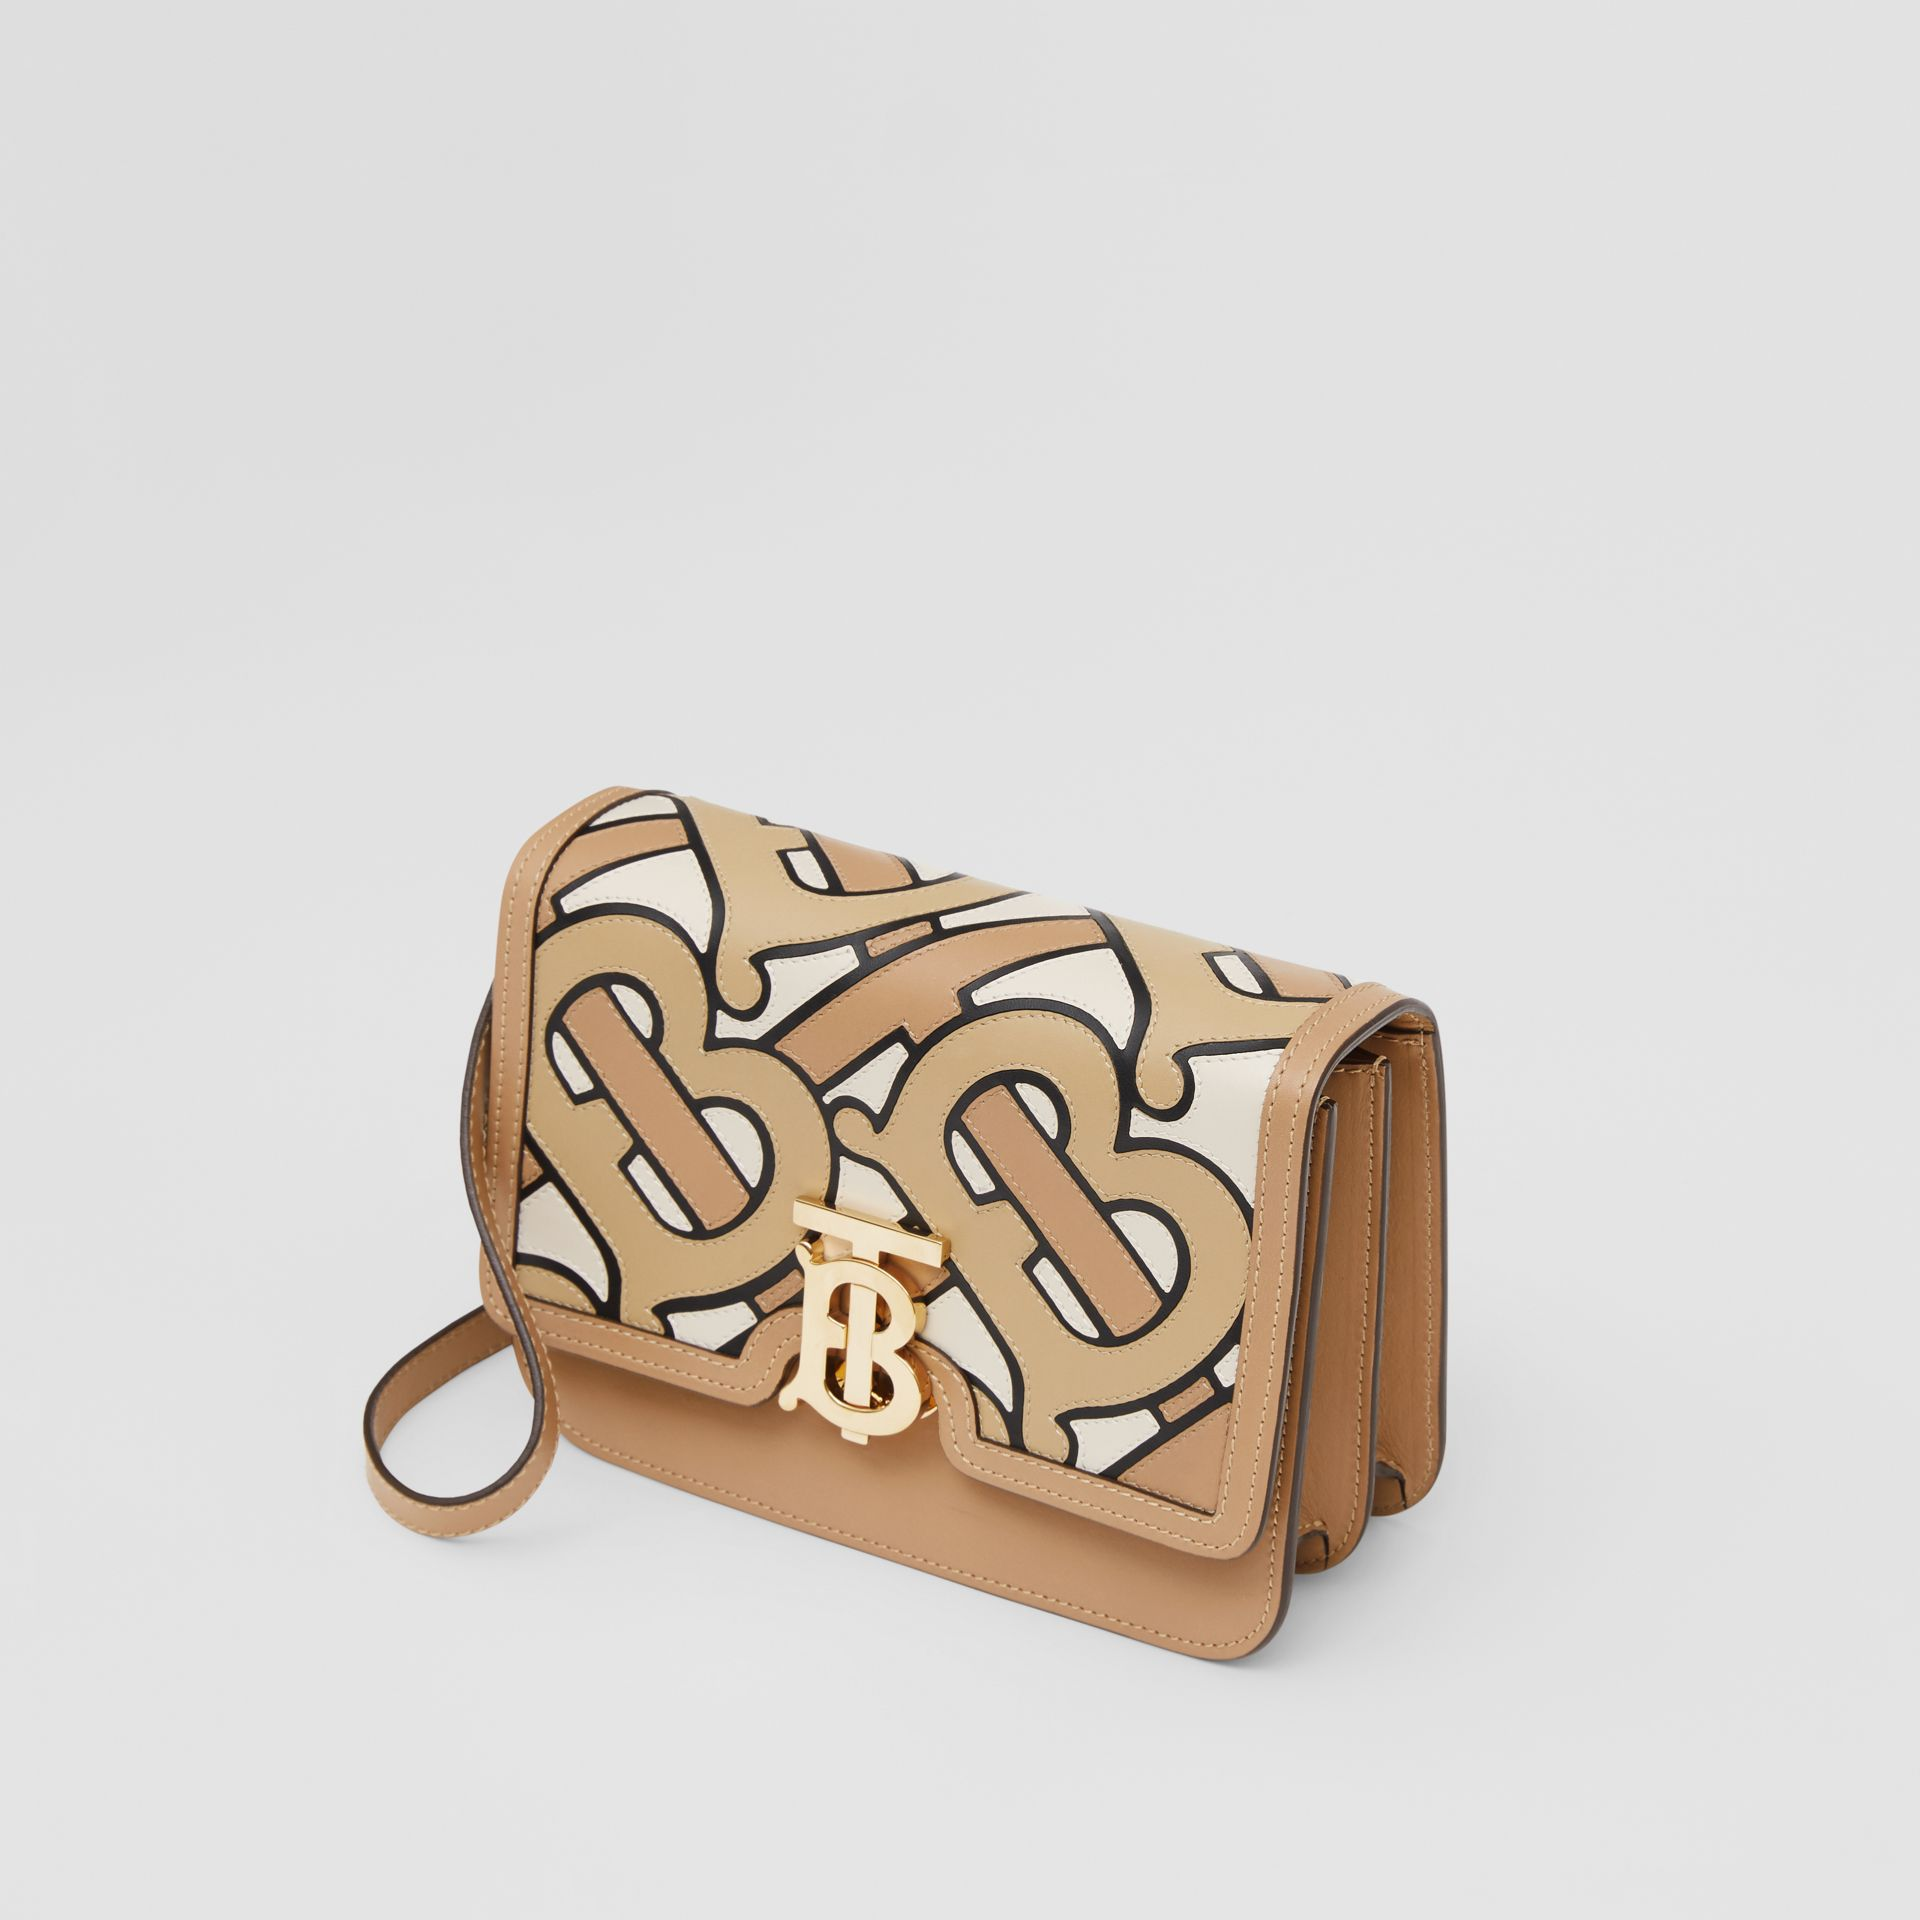 Small Monogram Intarsia Leather TB Bag in Beige - Women | Burberry United States - gallery image 3